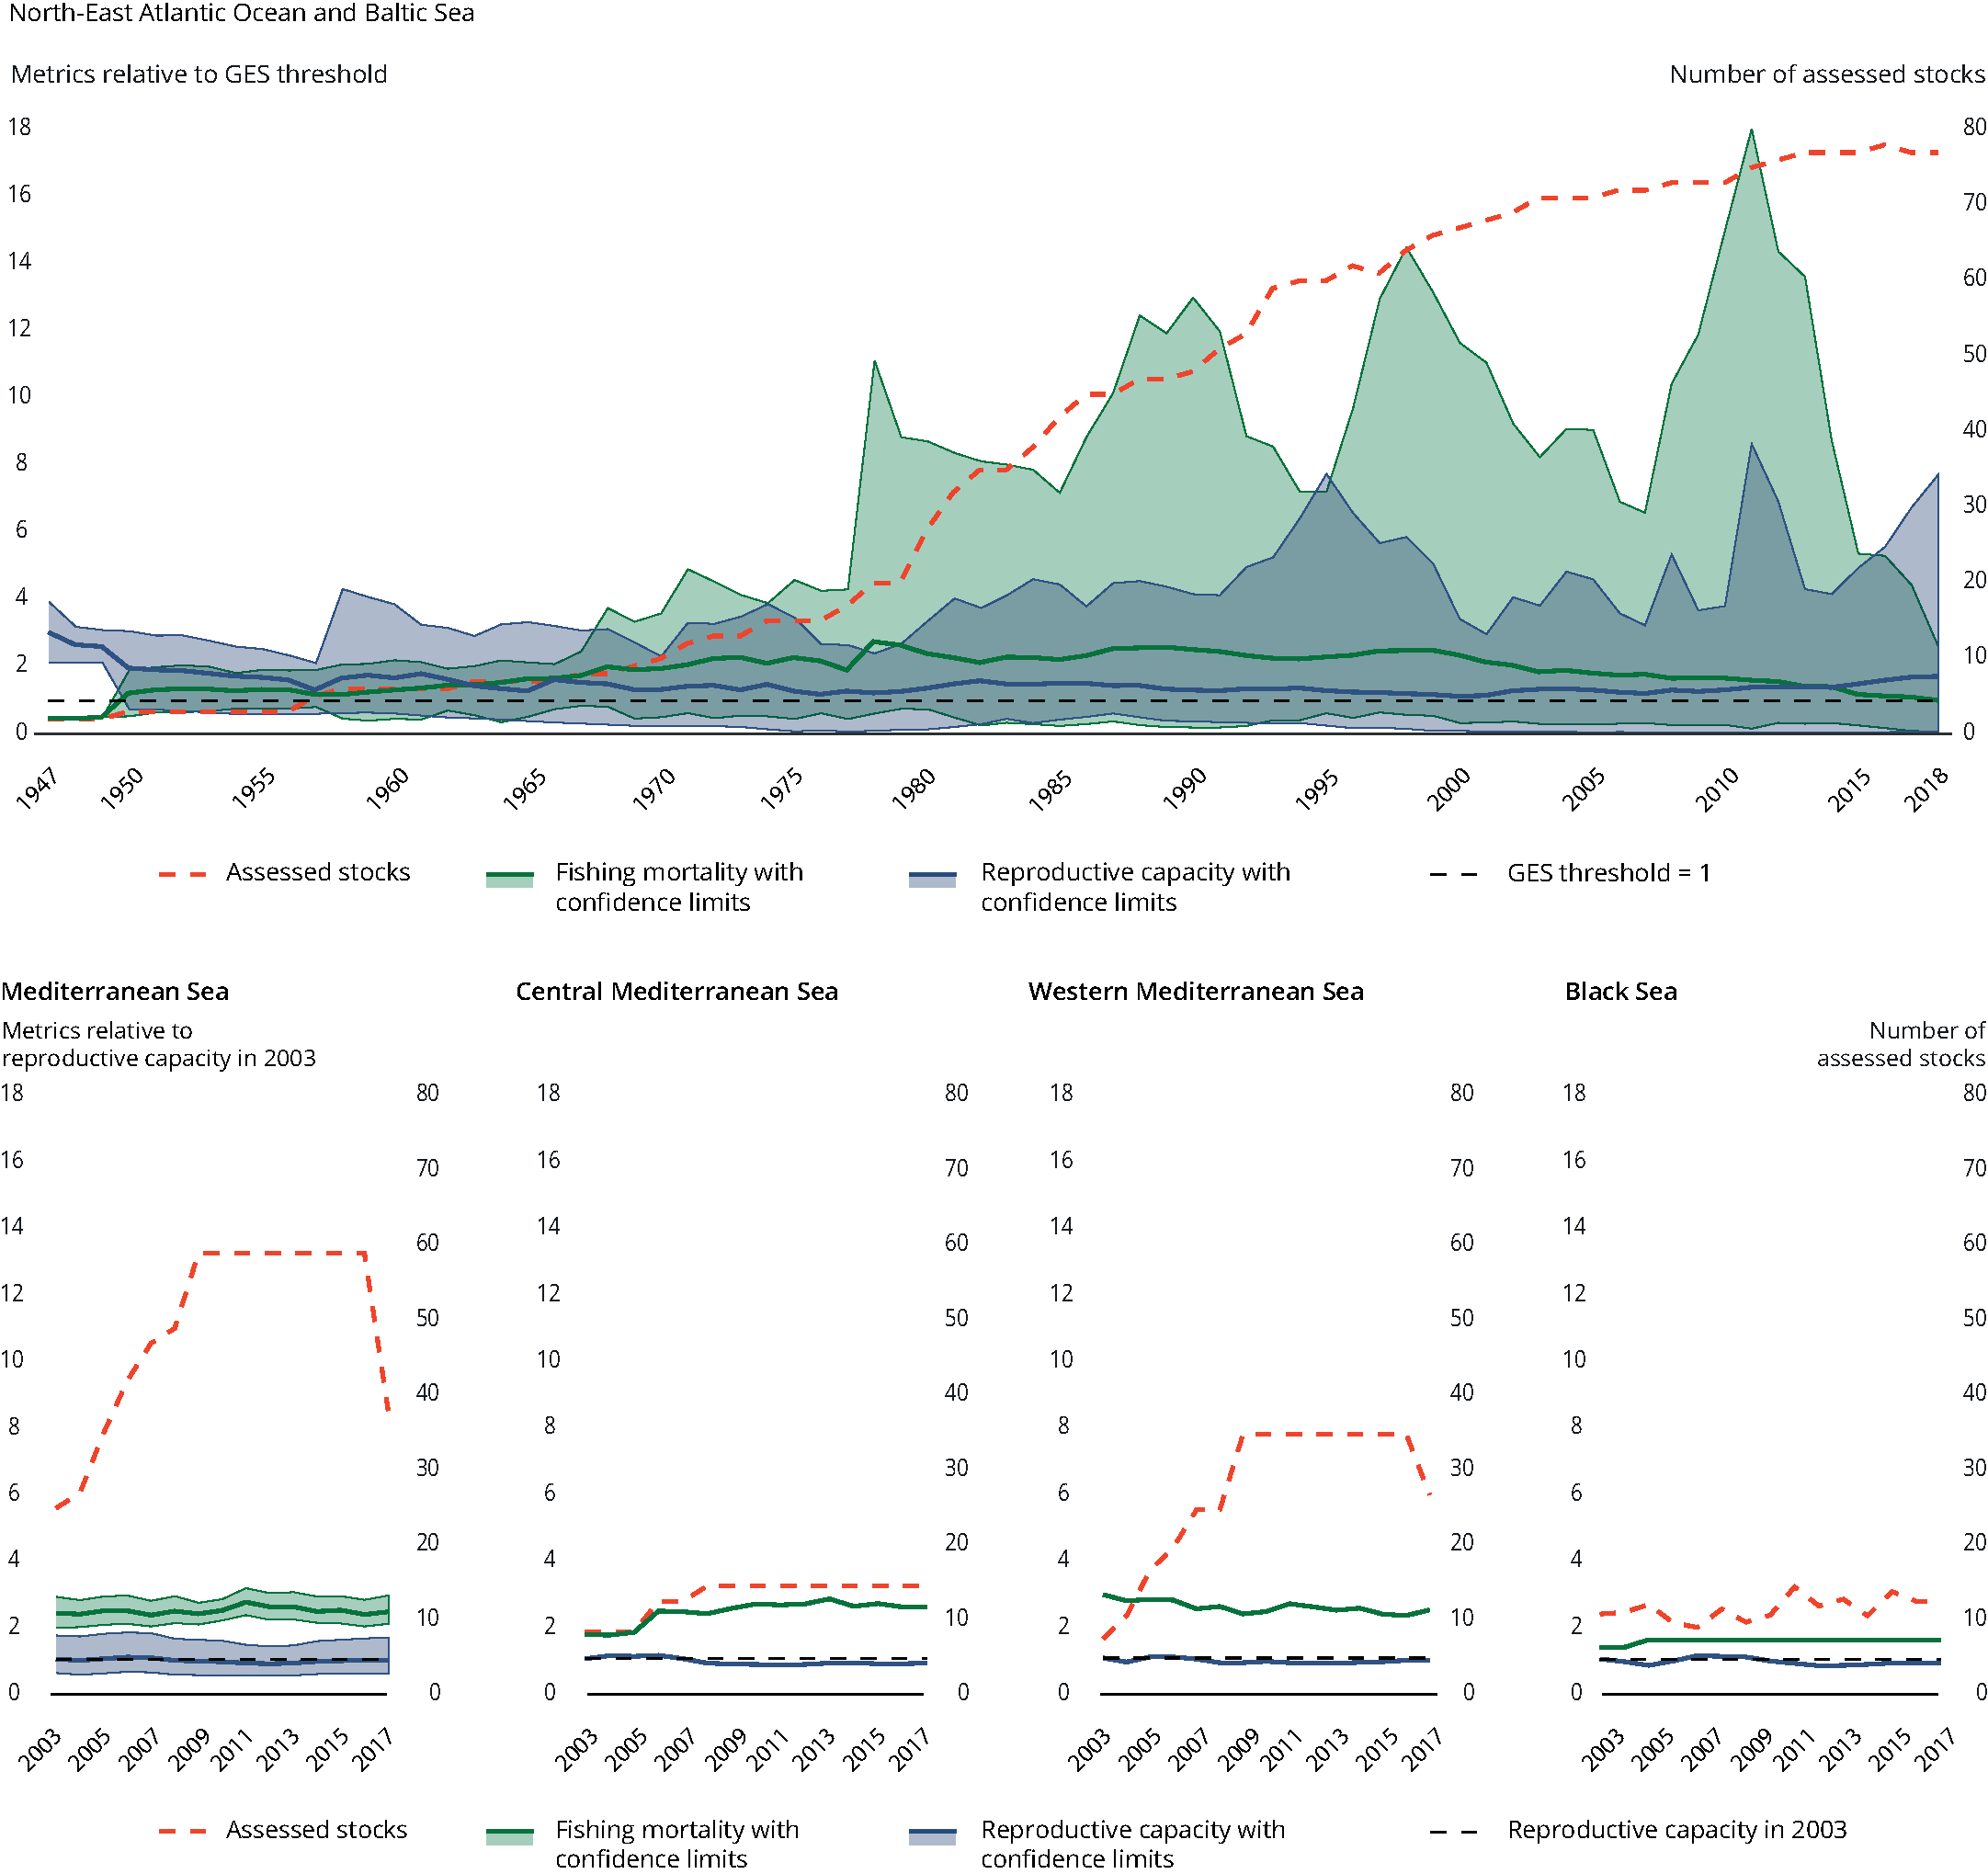 Trend in the state of the assessed European commercial fish and shellfish stocks in relation to the Good Environmental Status criteria for fishing mortality and reproductive capacity in the four regional seas